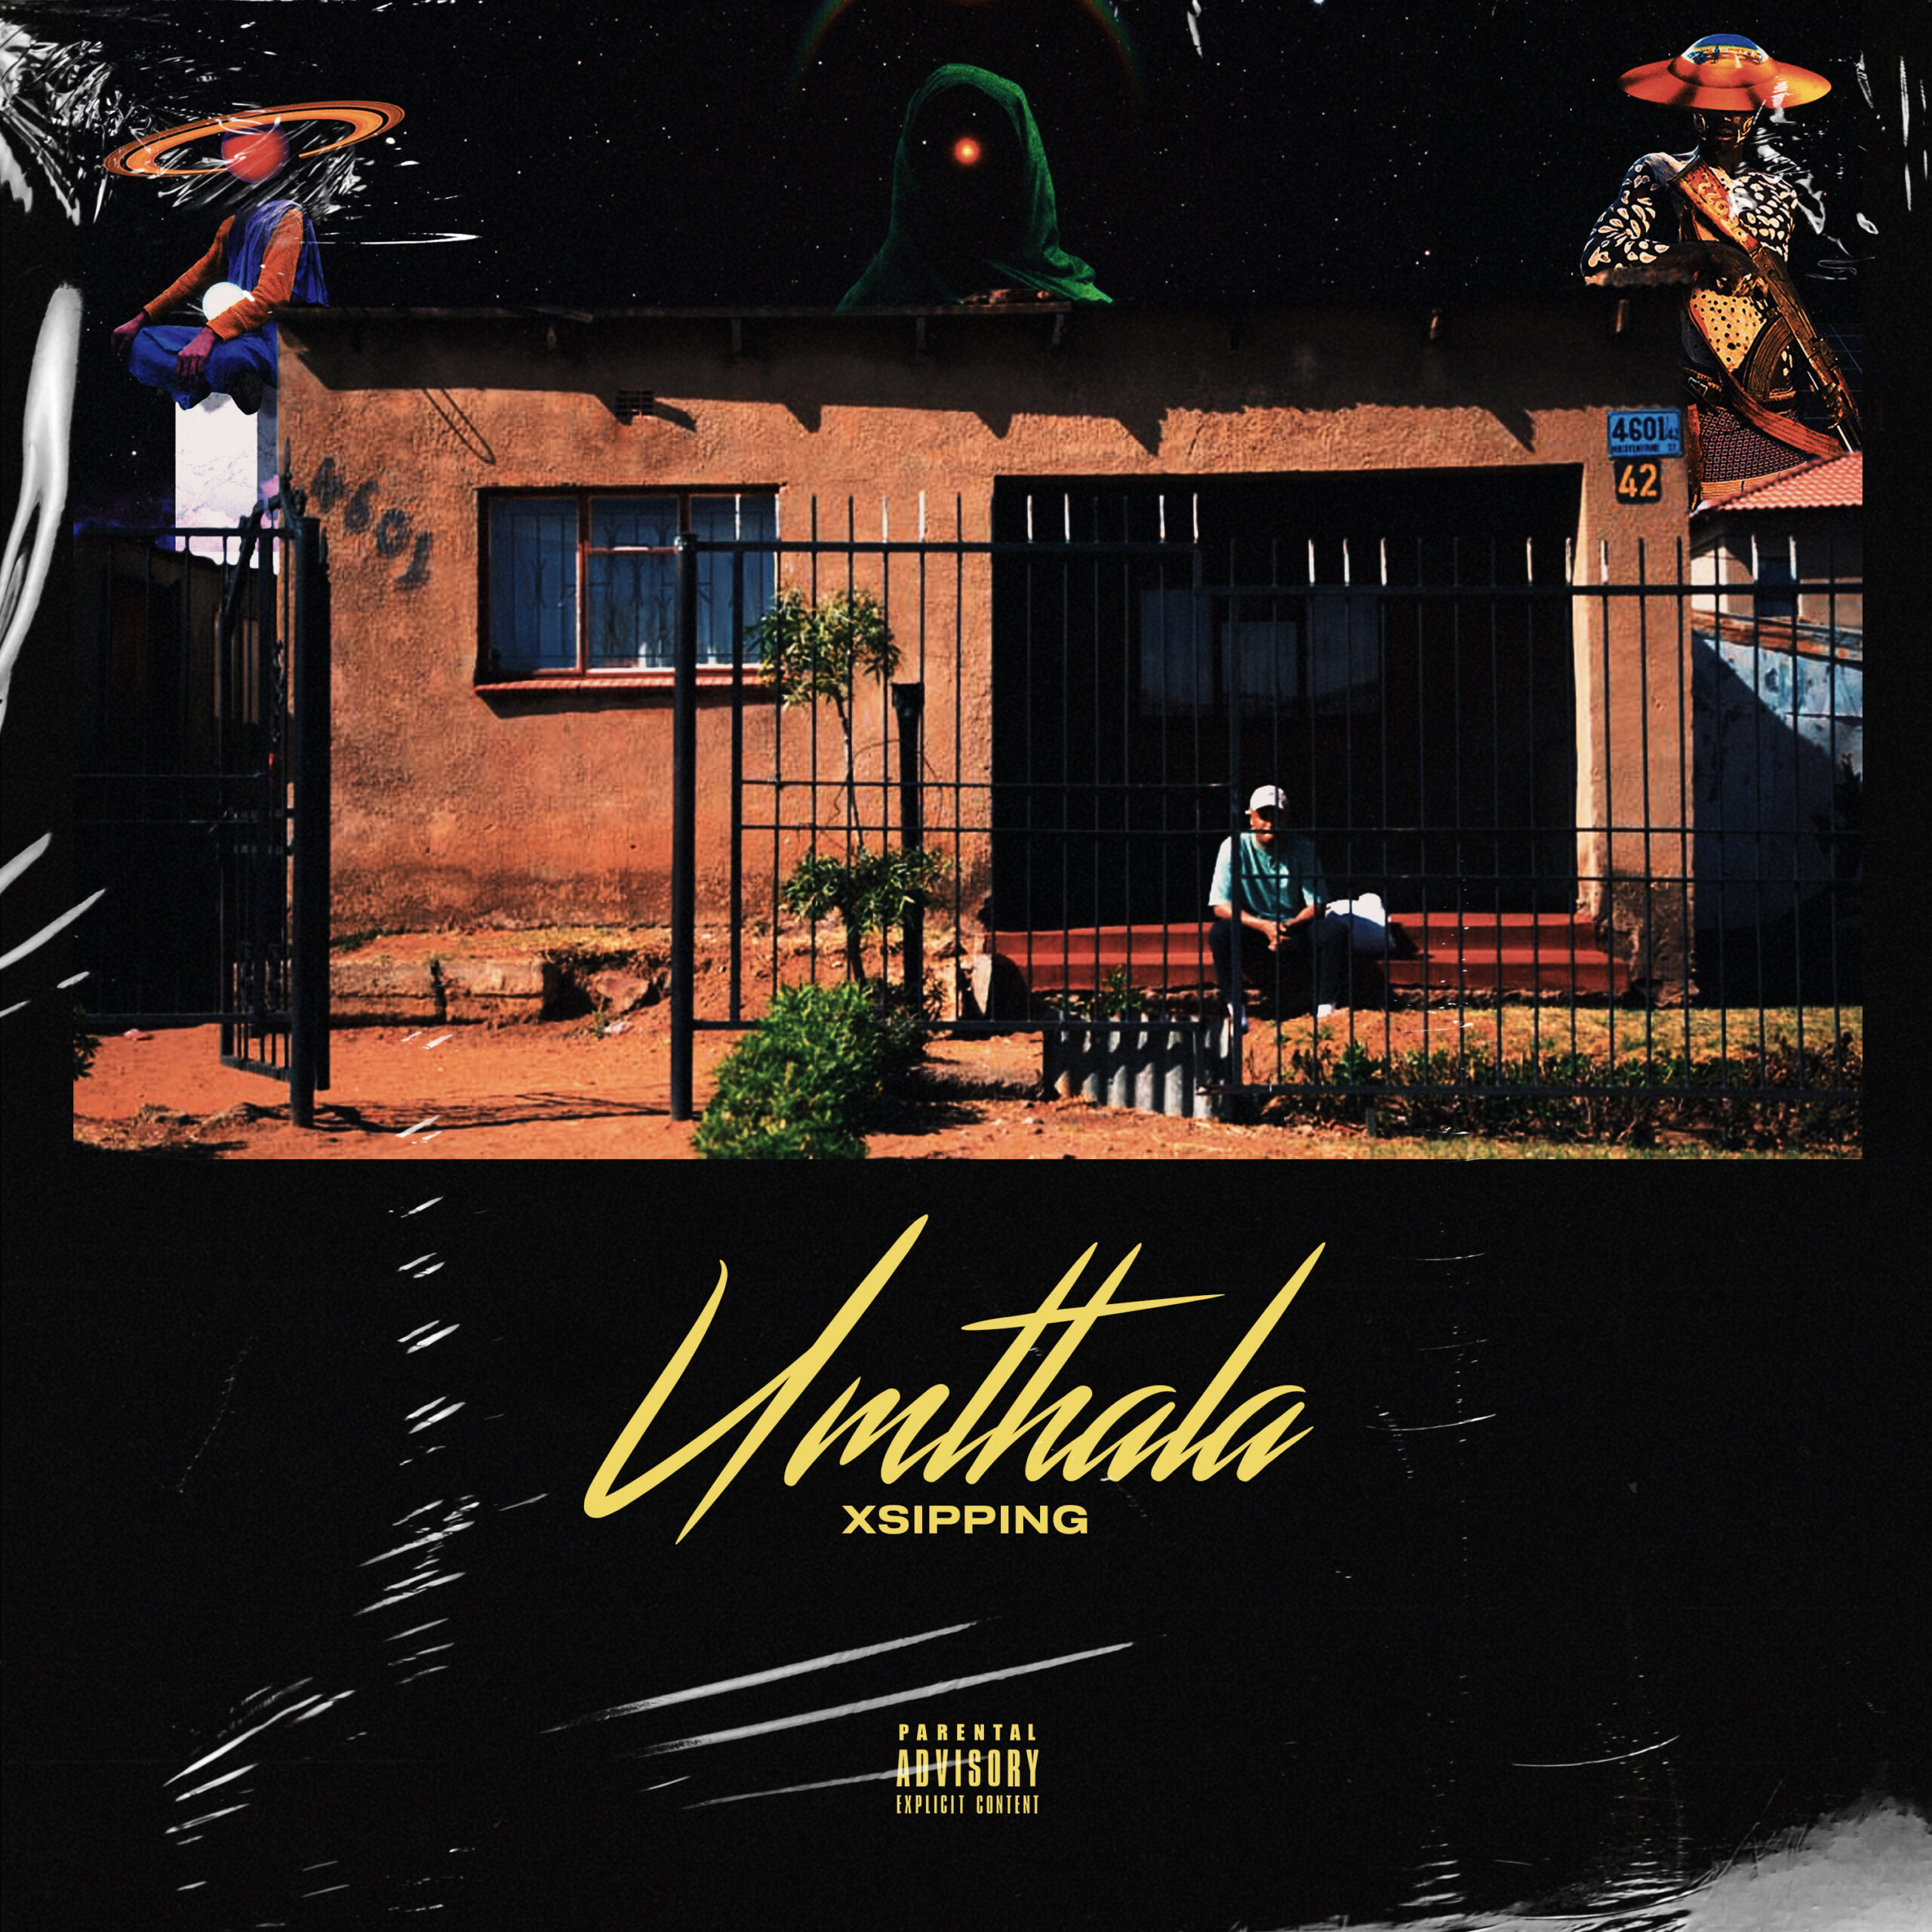 xSipping Umthala Album Art